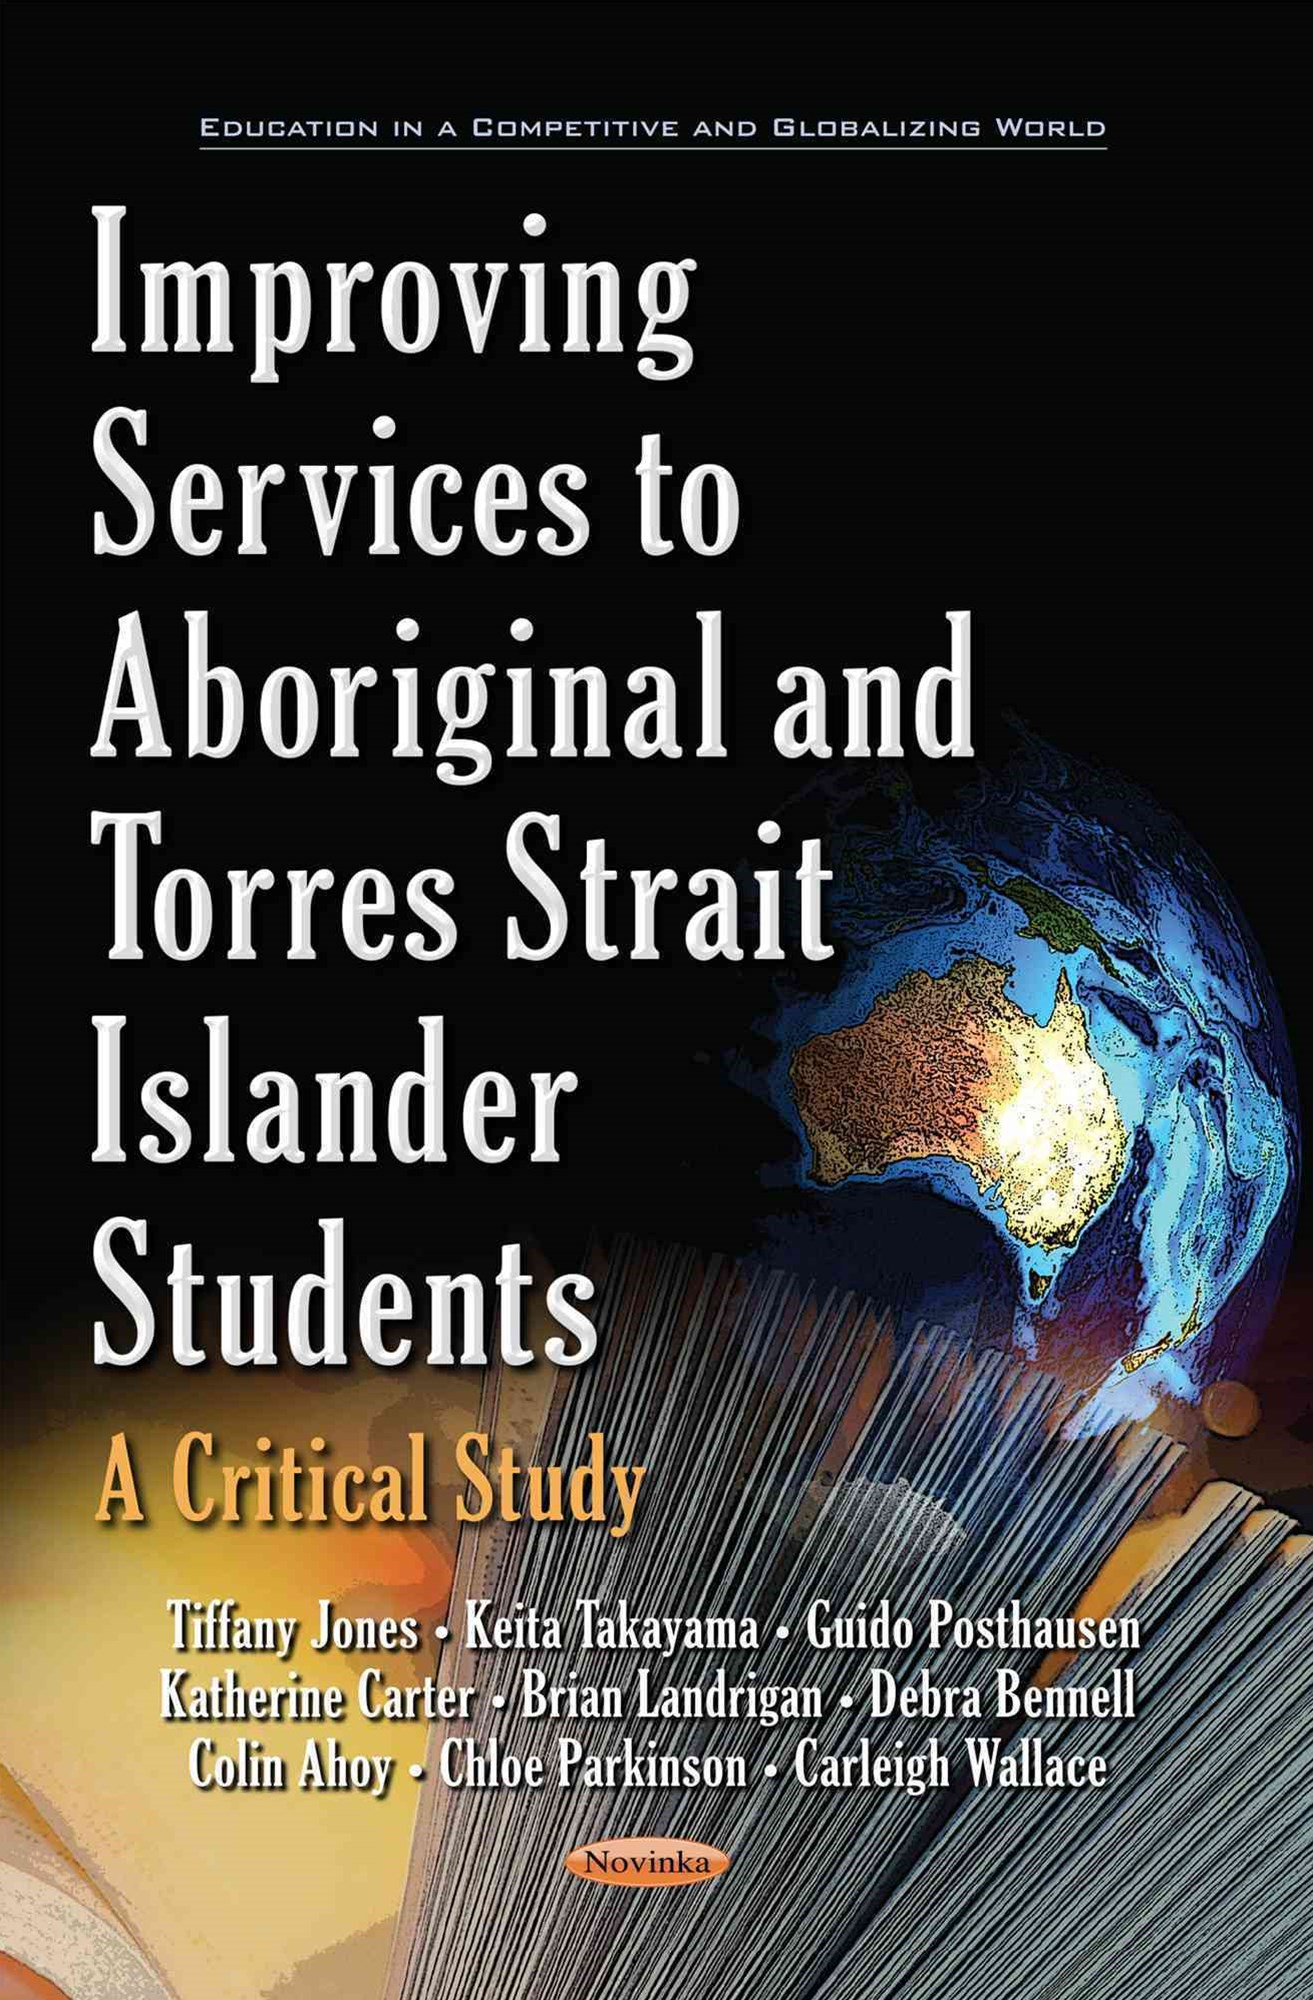 Improving Services to Aboriginal and Torres Strait Islander Students